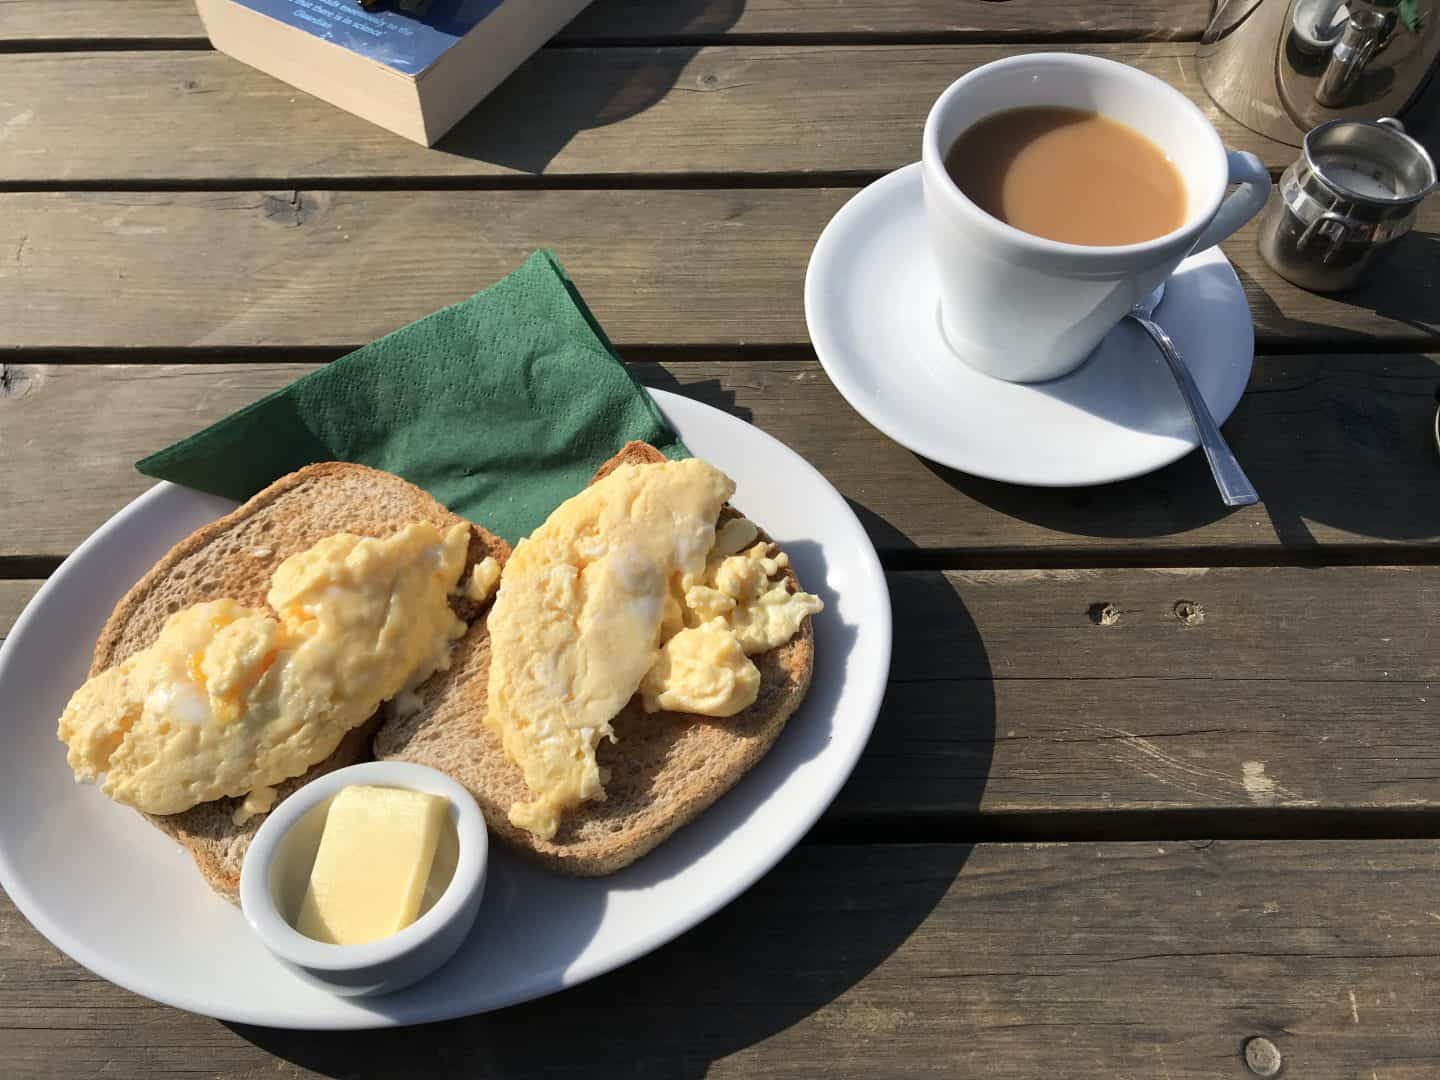 Delicious scrambled eggs and tea